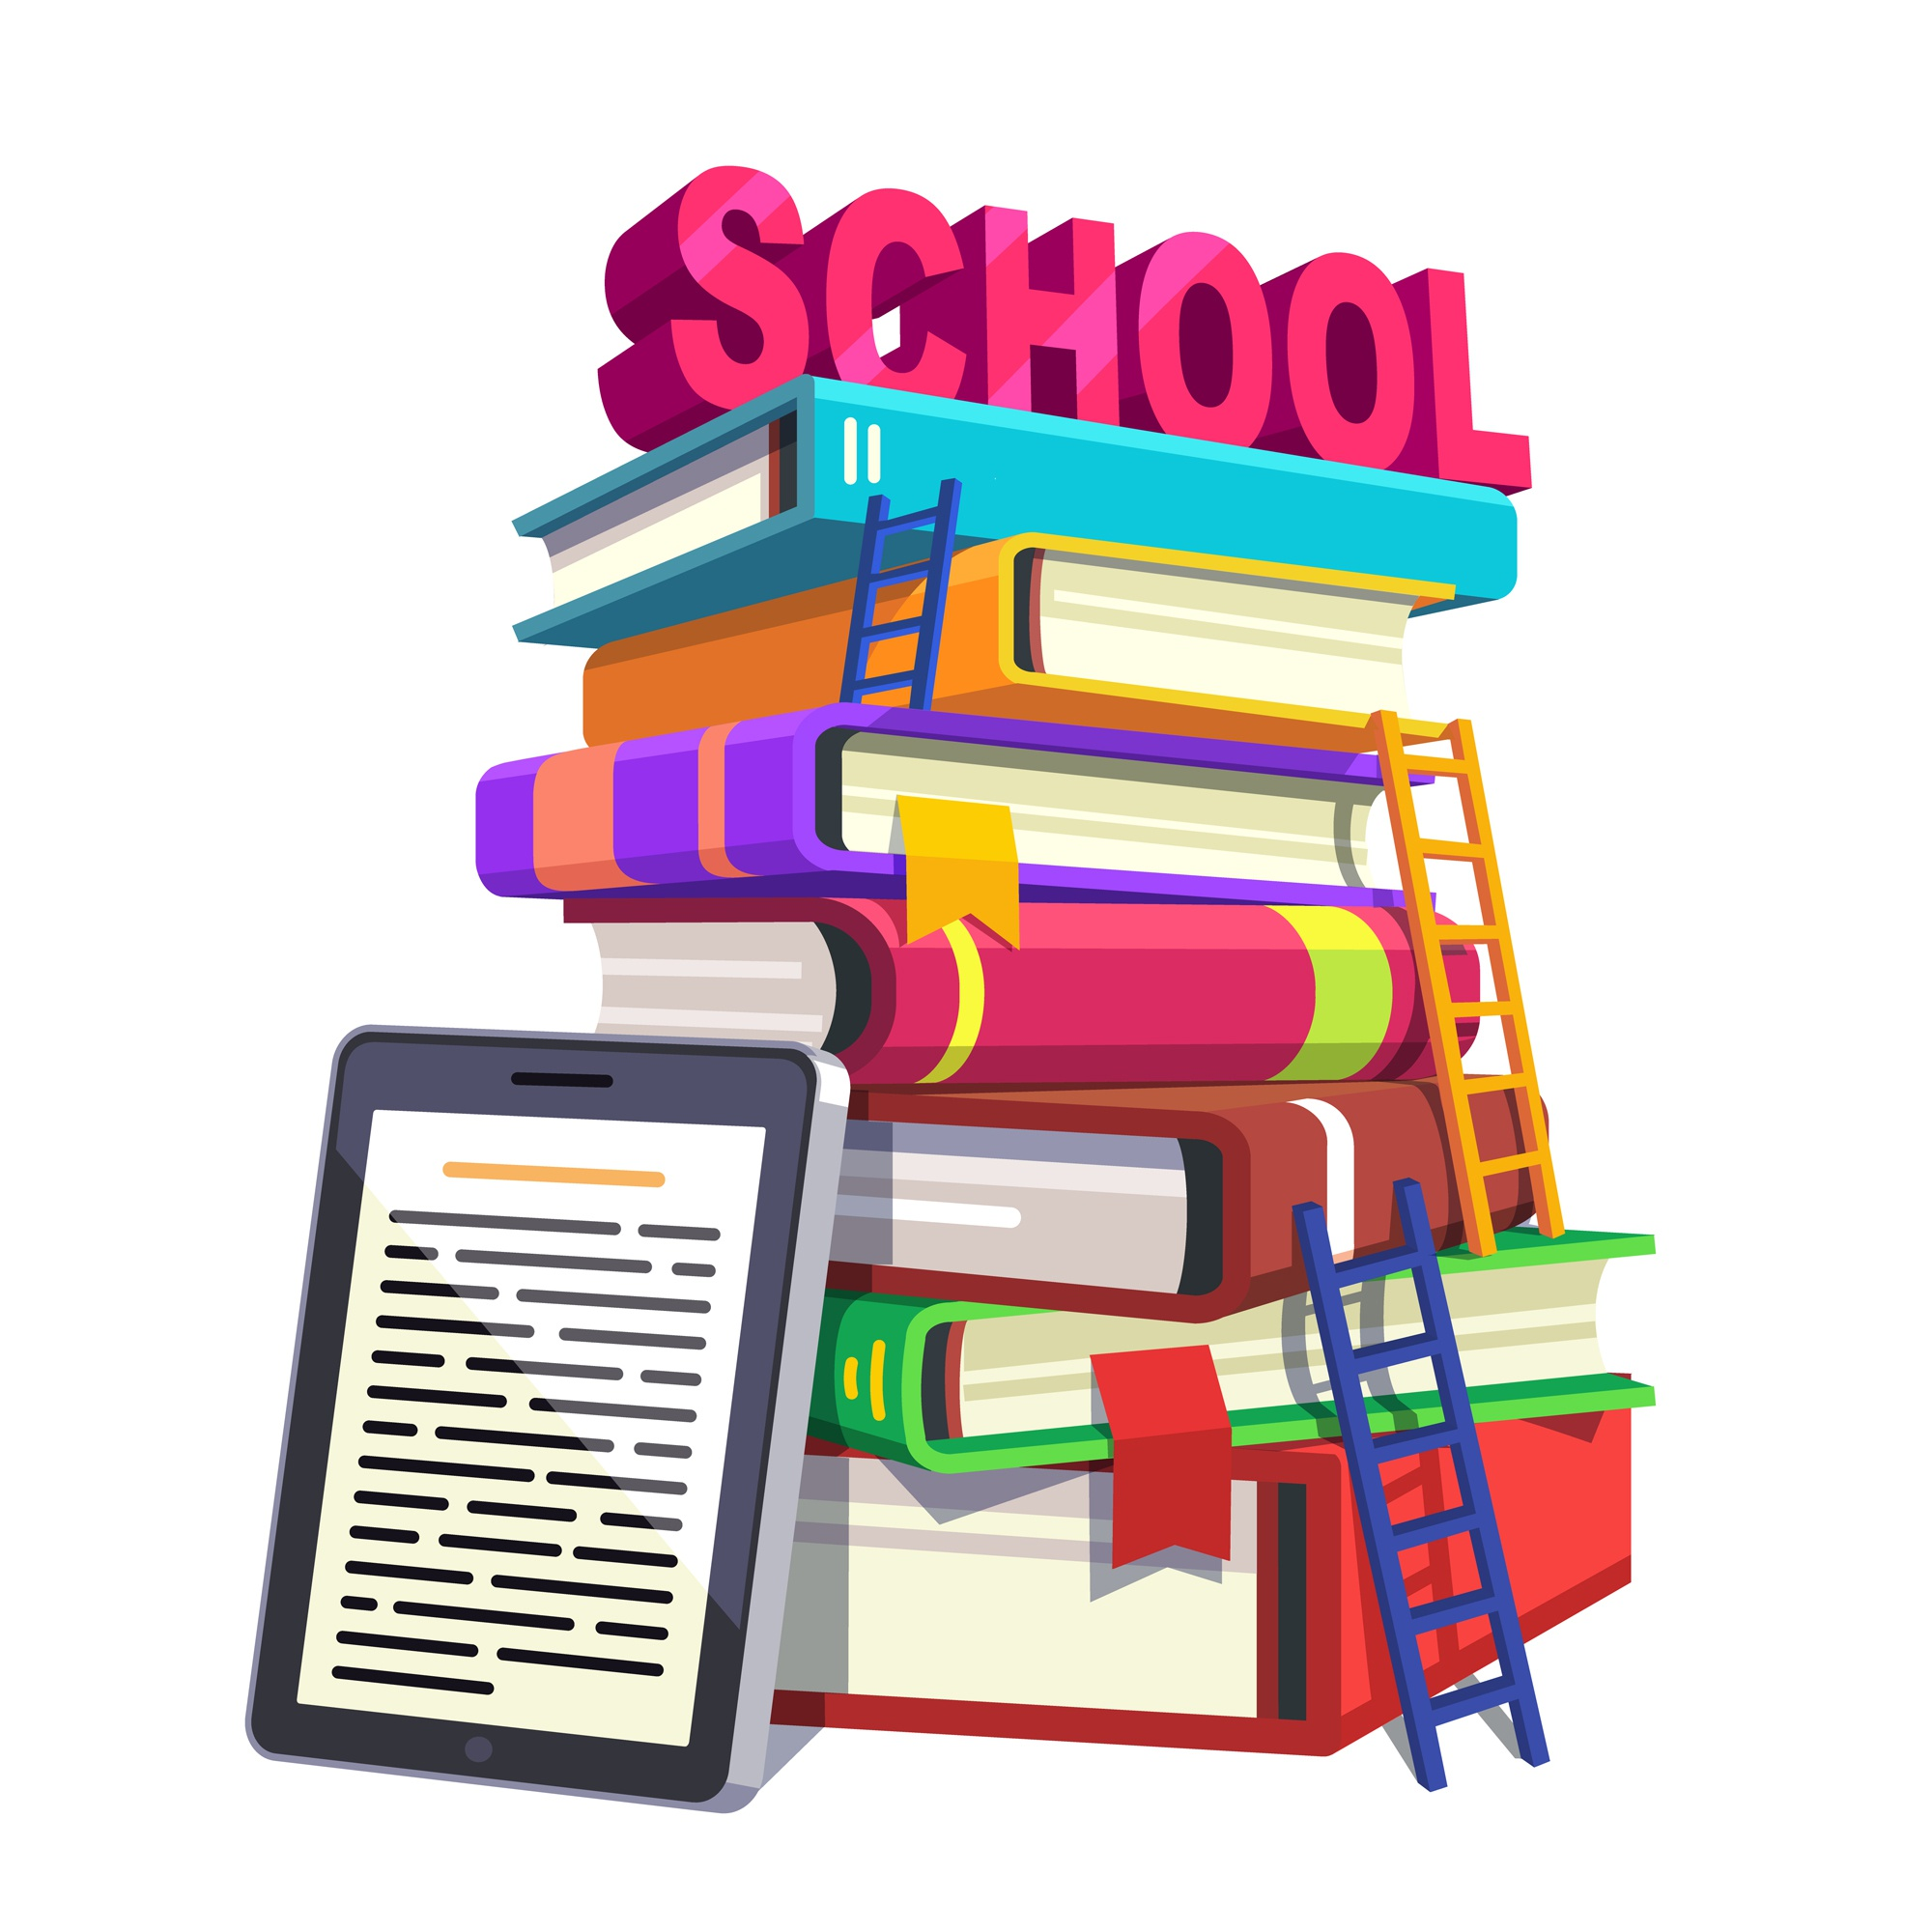 Modern school education and knowledge concept